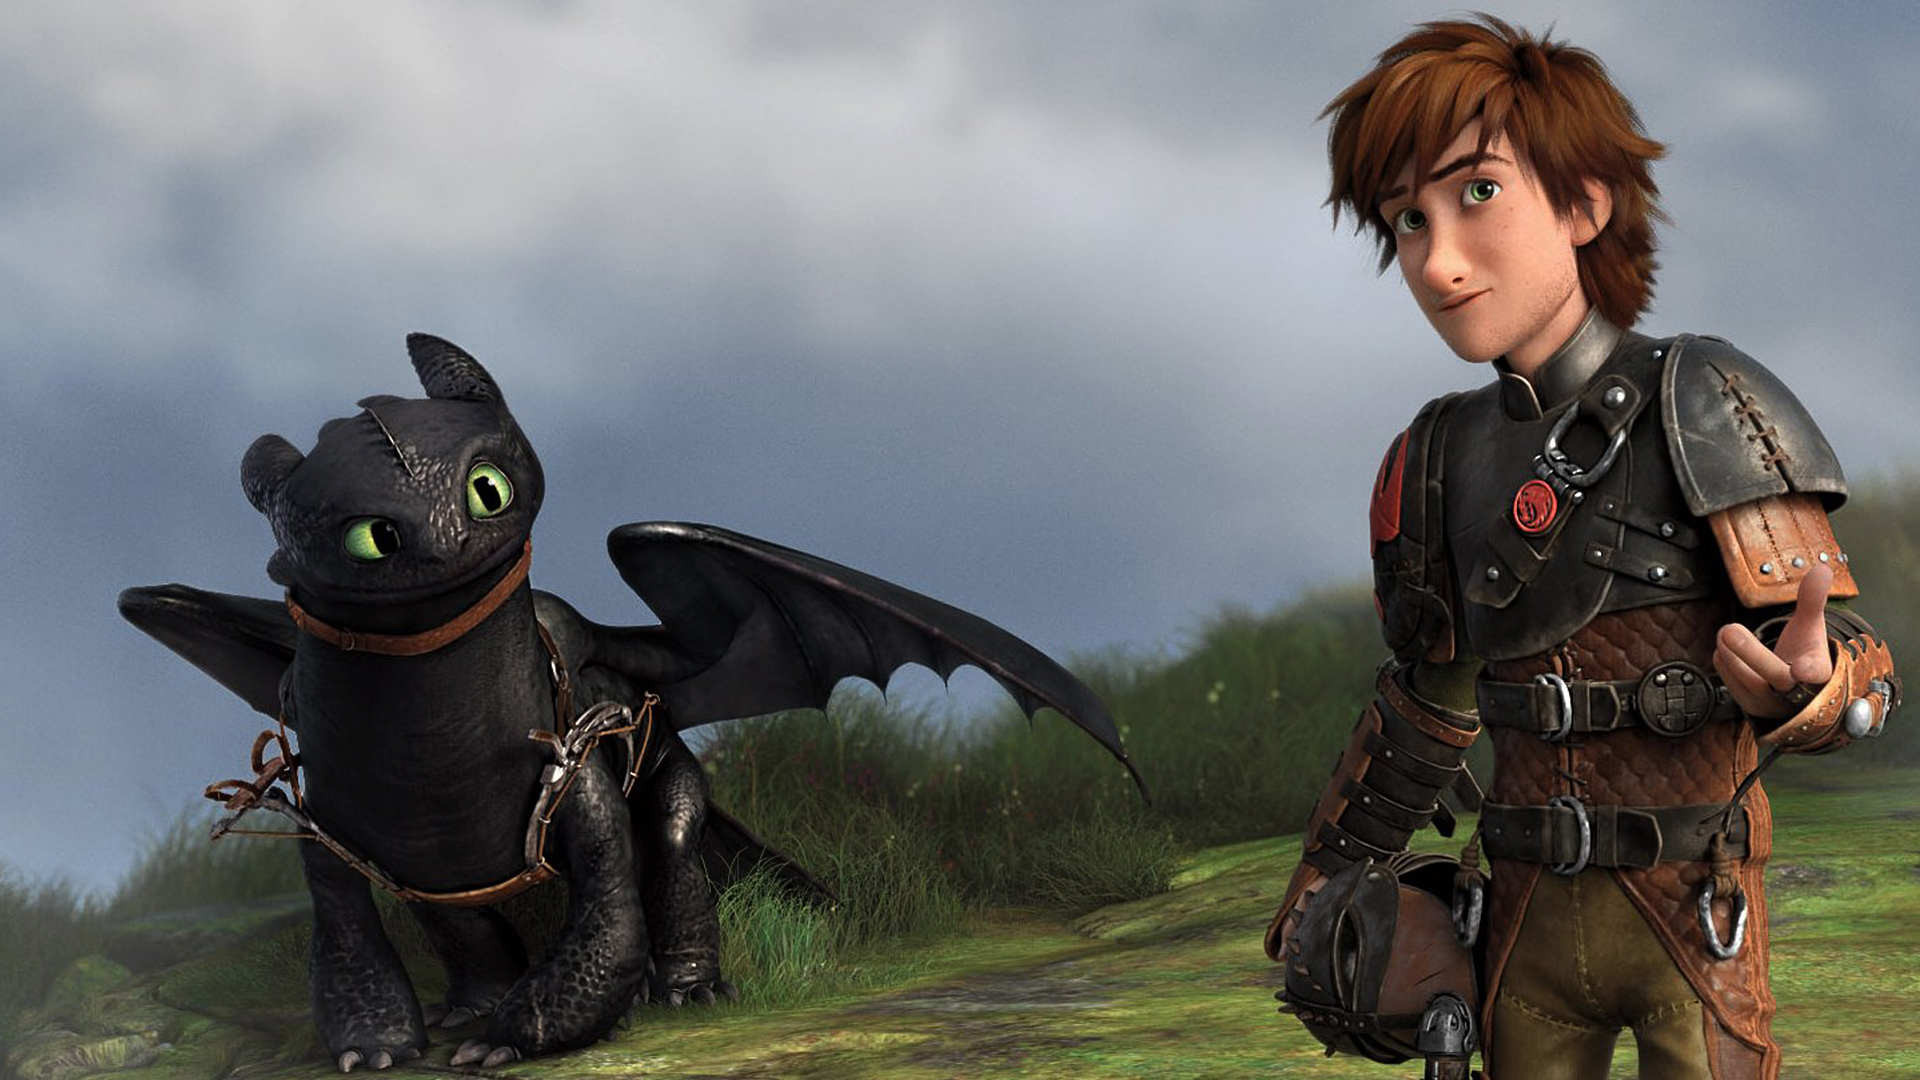 Free Download Download How To Train Your Dragon Wallpaper 49102